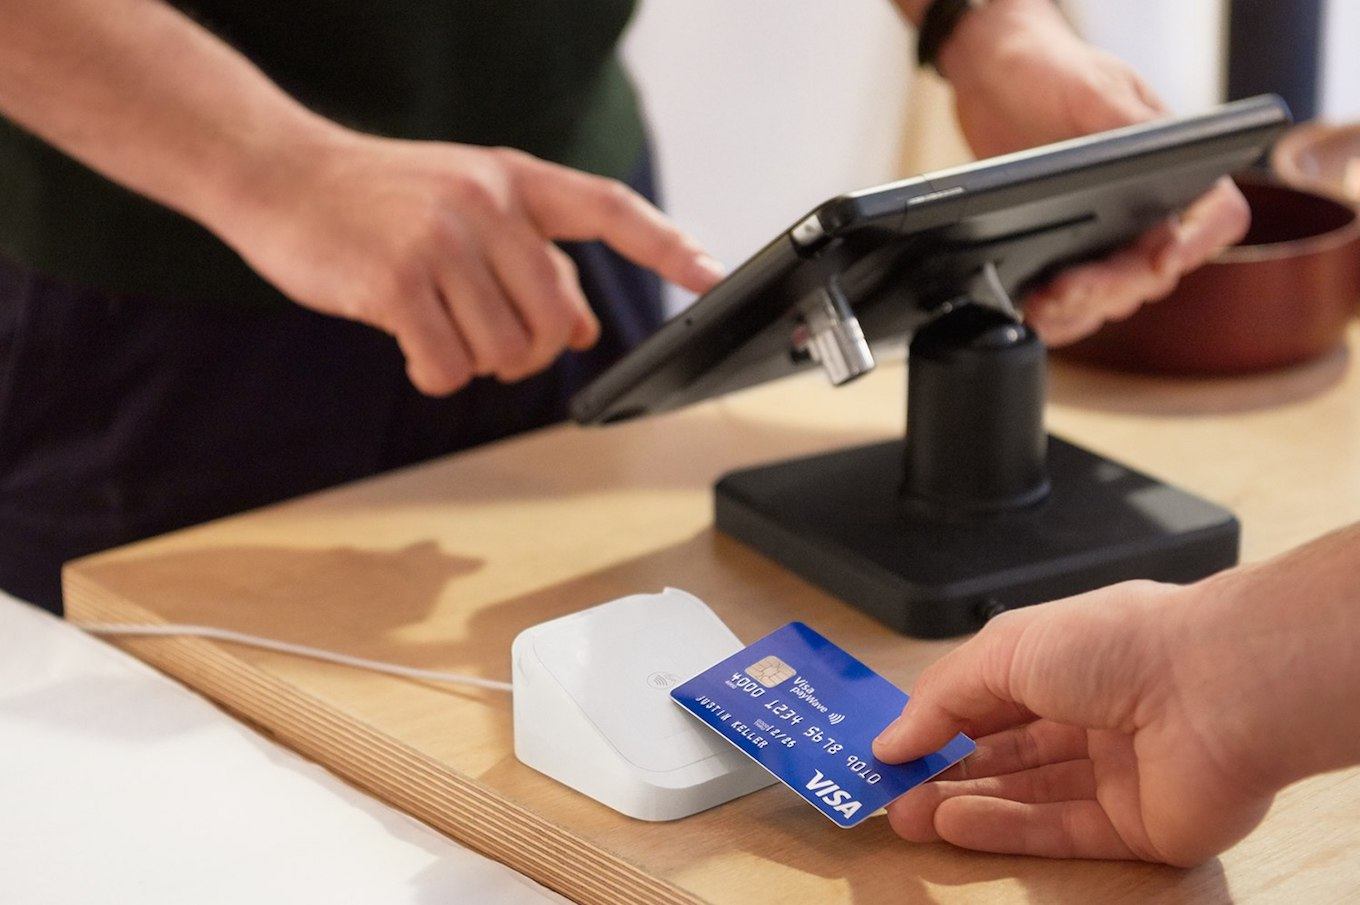 Jack Dorsey's Square Mobile Payment System Arrives In UK